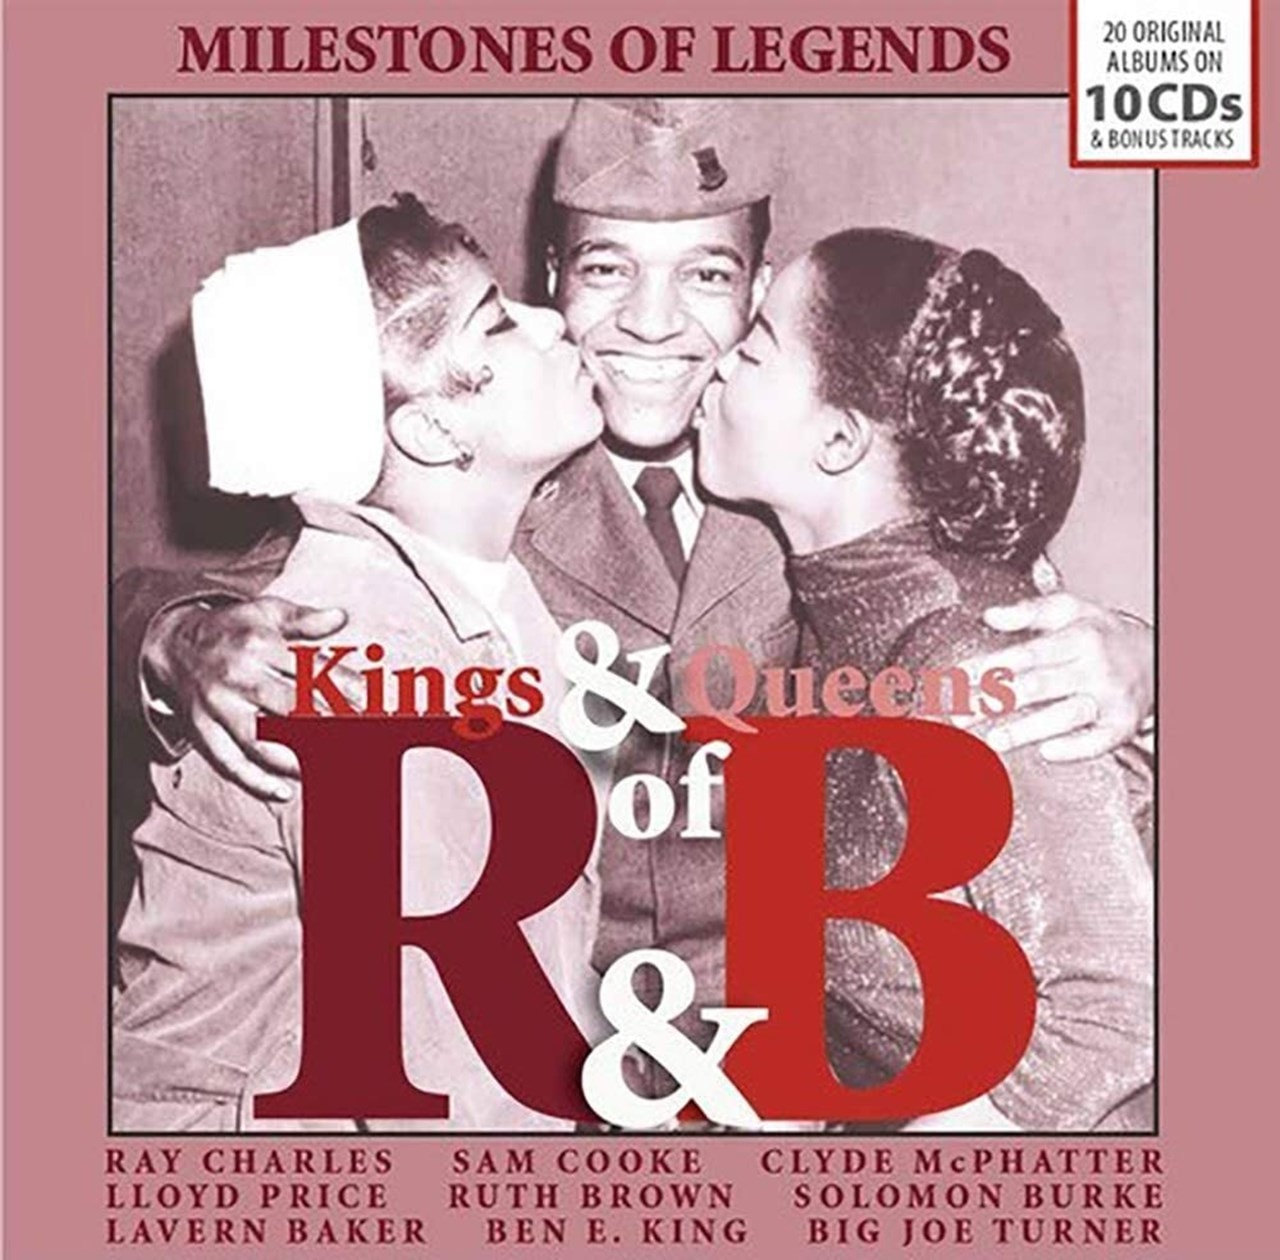 Kings & Queens of Rhythm & Blues - 1